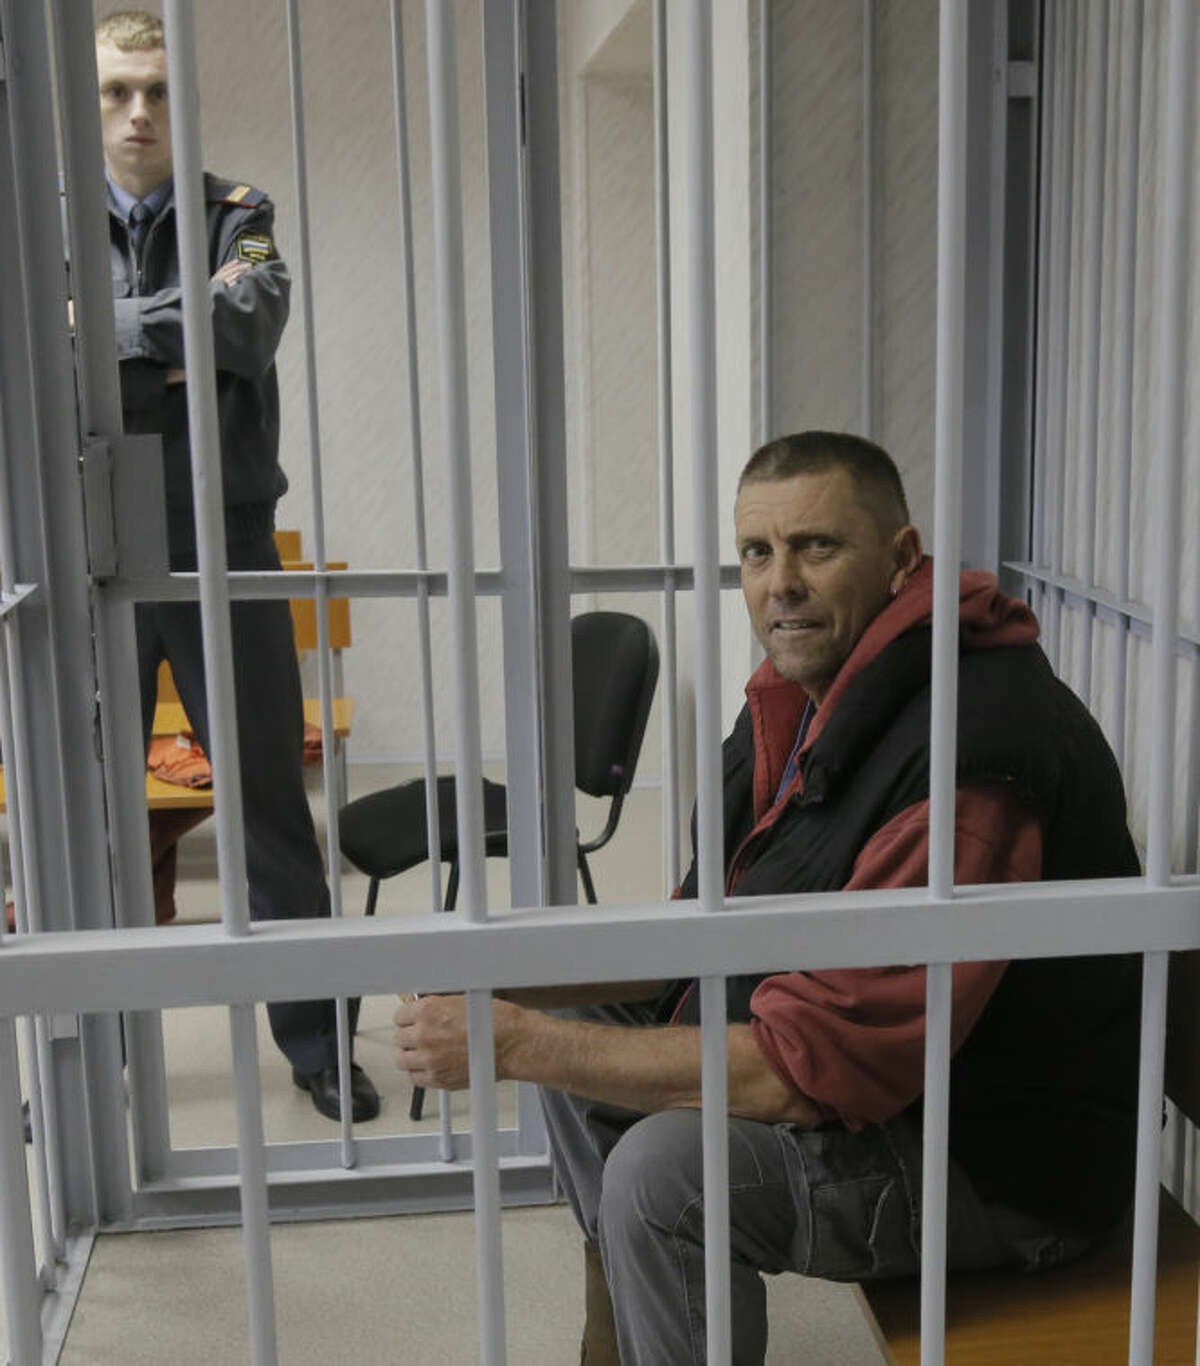 A police officer guards a cage with Greenpeace activist and boat mechanic Jonathon Beauchamp from New Zealand in a court room in Murmansk, Russia, on Thursday, Sept. 26, 2013. A Russian court on Thursday jailed Greenpeace activist Jonathon Beauchamp who was part of the 30-member Greenpeace team protesting near an oil platform last week. The Coast Guard disrupted an attempt by Greenpeace activists on Sept. 18 to scale the Russian Arctic platform. Russian authorities seized Greenpeace's ship the next day and towed it with the 30 activists aboard to Murmansk. The activists are being investigated for piracy. (AP Photo/Efrem Lukatsky)